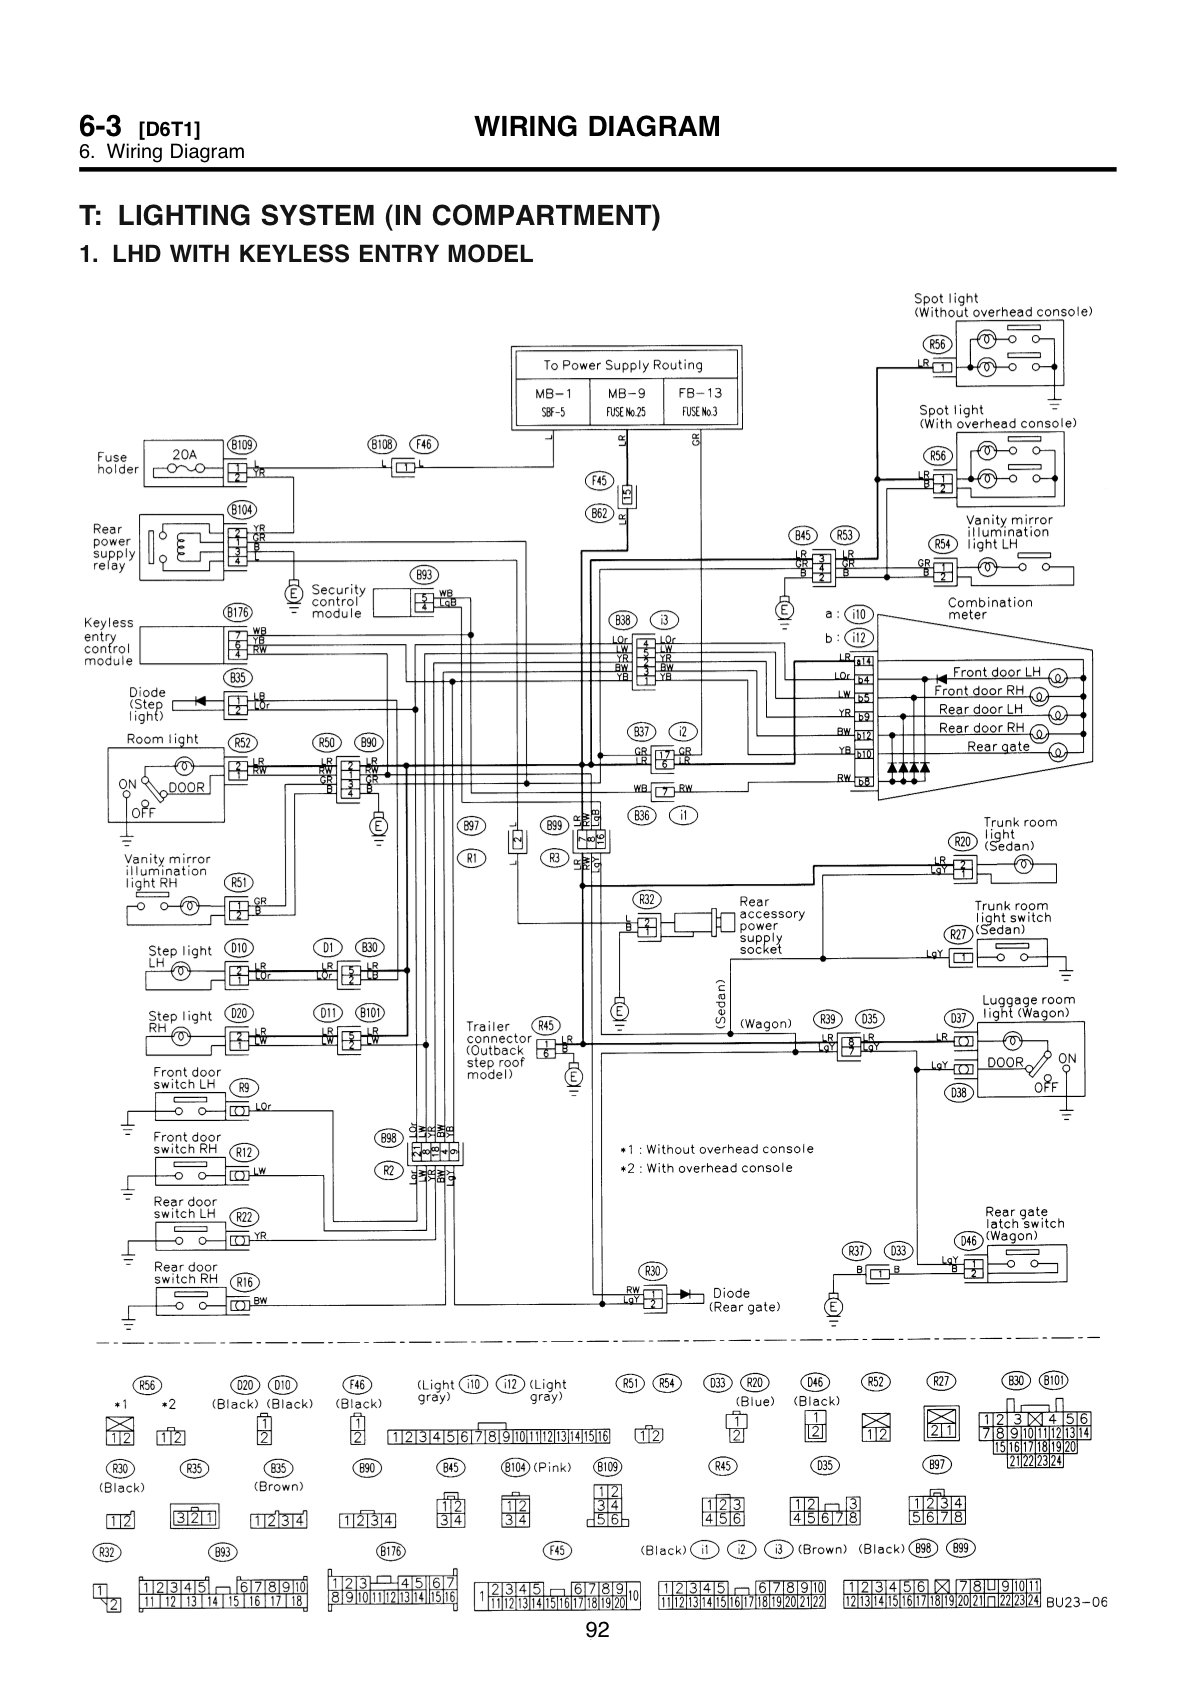 subaru 1990 legacy wiring diagram - wiring diagram schematic hill-total-a -  hill-total-a.aliceviola.it  aliceviola.it